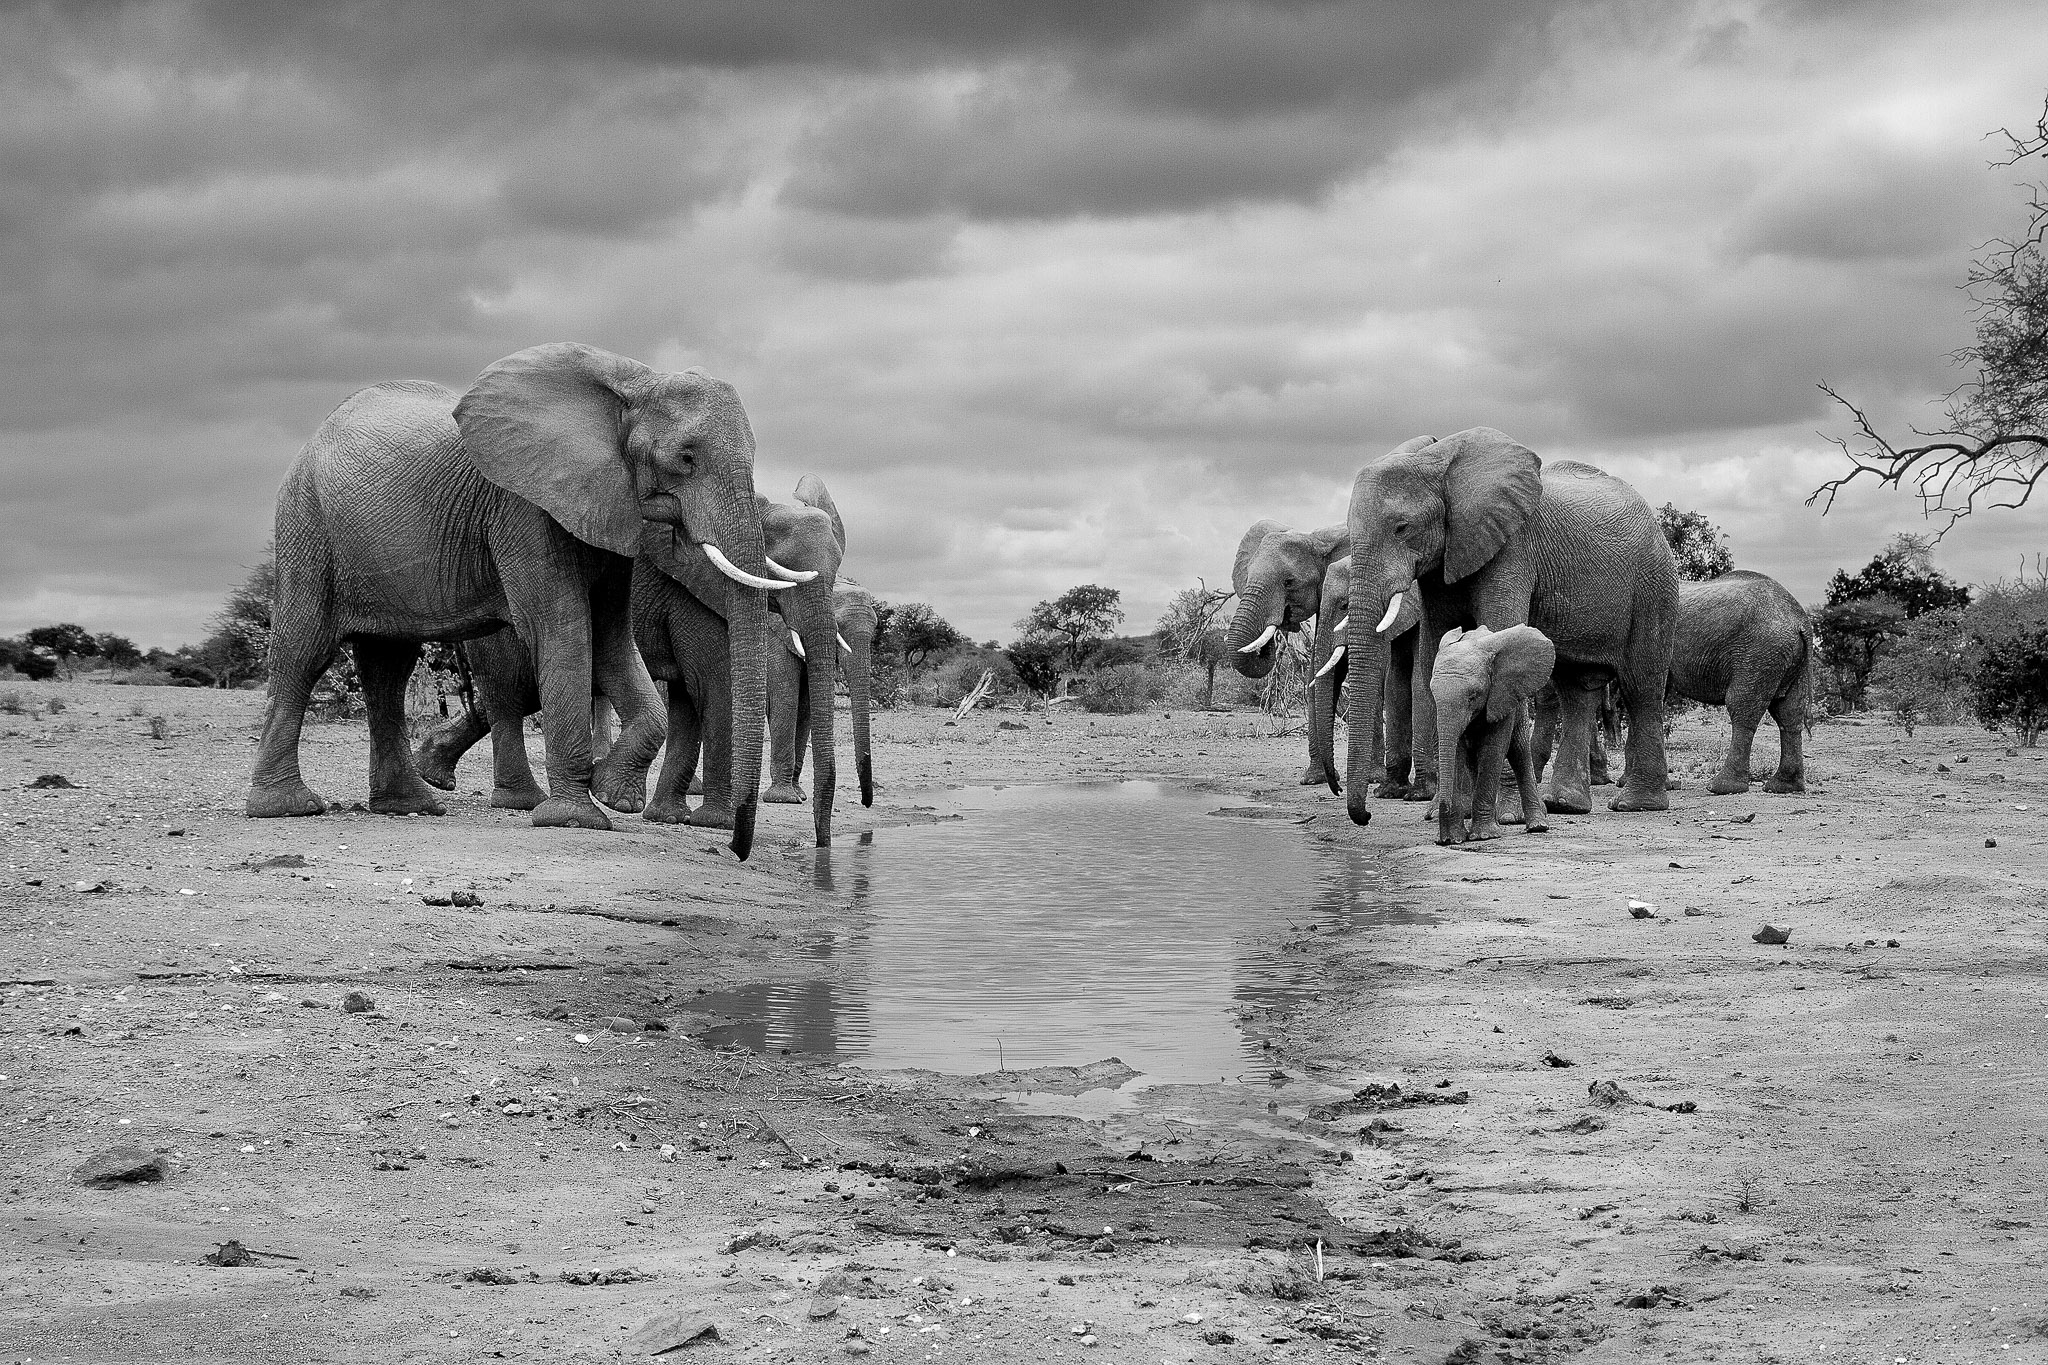 A herd of elephants drinking in black and white